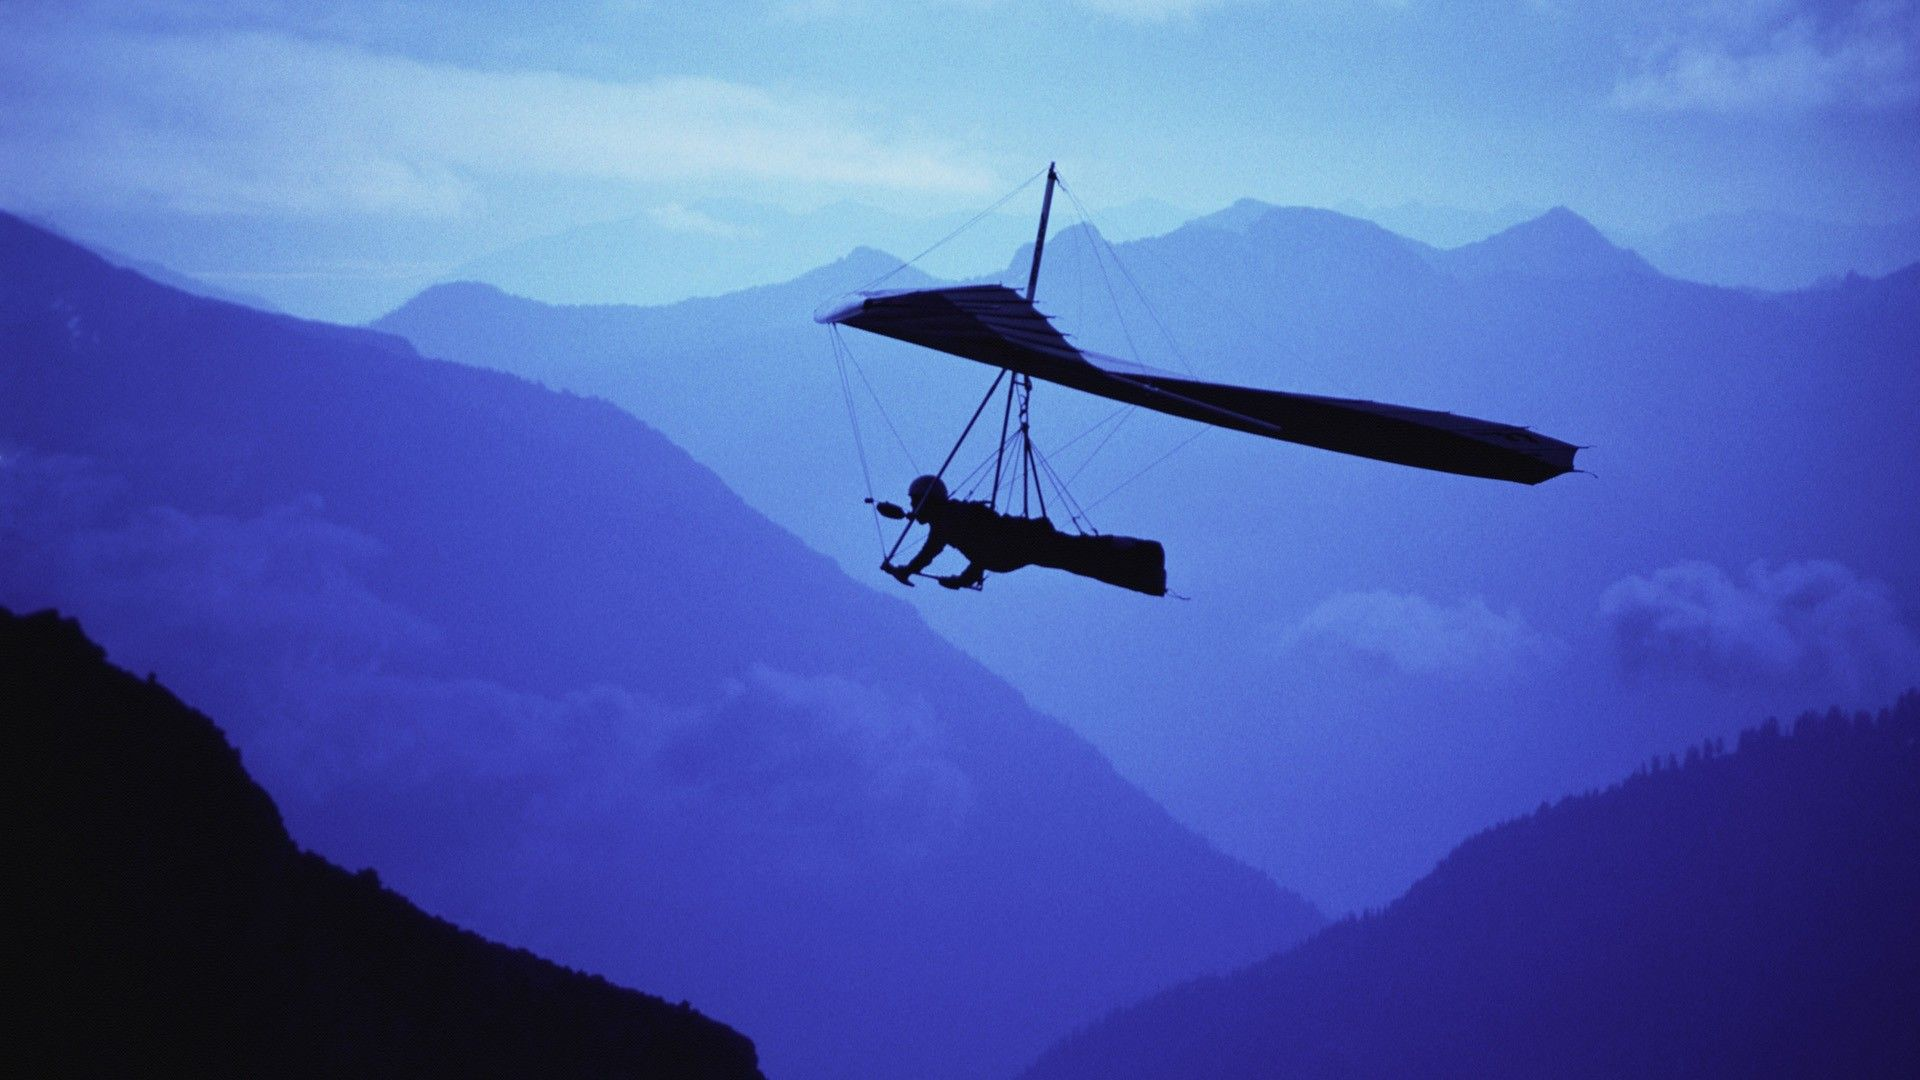 1920x1080 - Hang Gliding Wallpapers 8